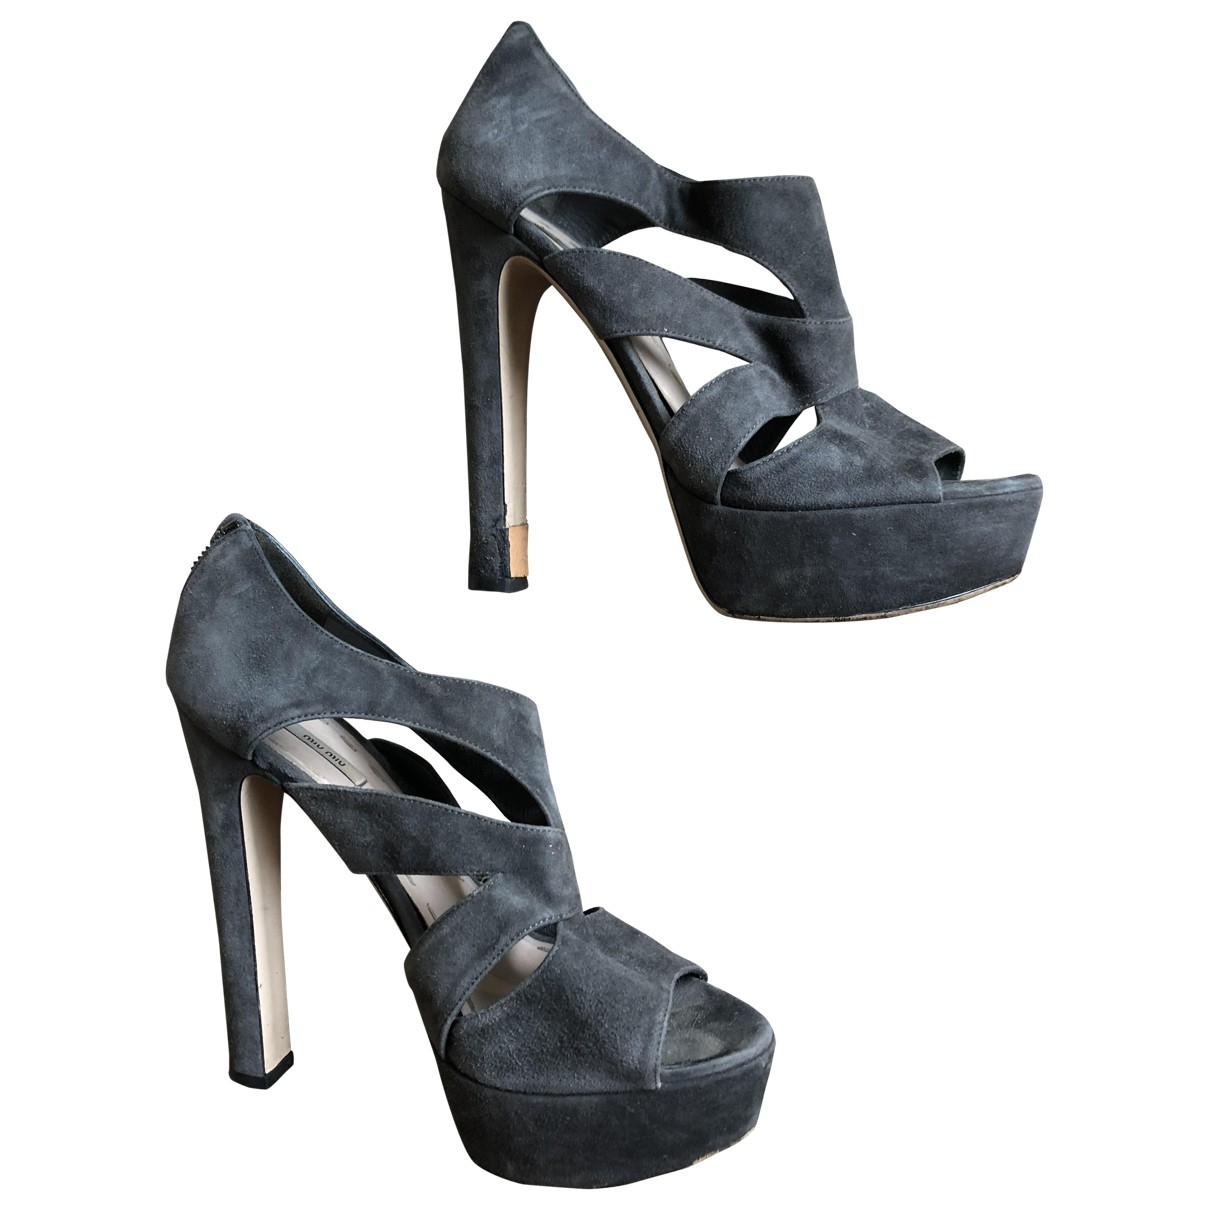 Miu Miu \N Anthracite Suede Sandals for Women 38 EU